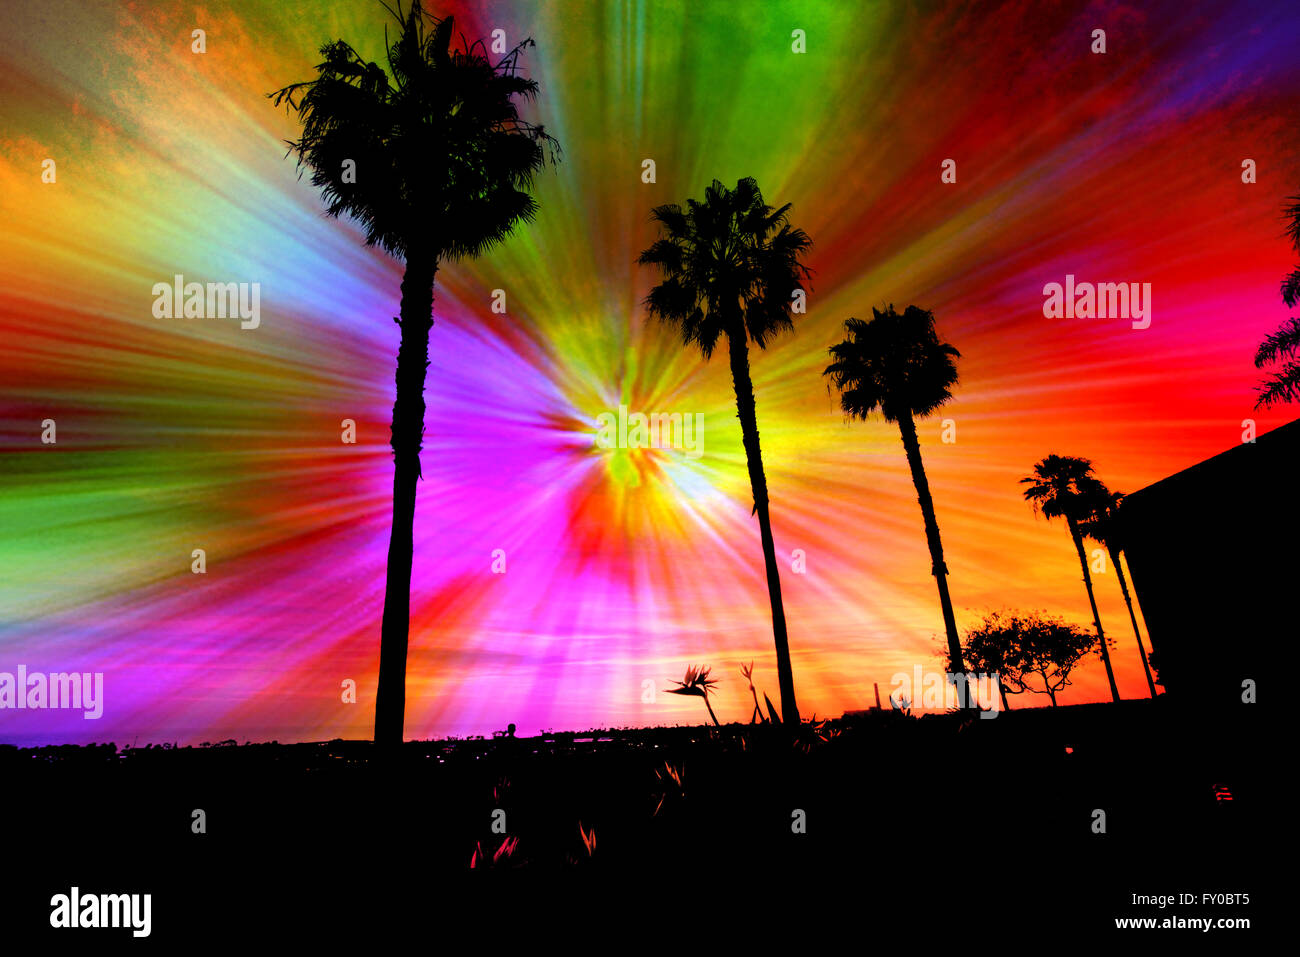 Silhouette of palm trees against a star burst of rainbow colors emanating from a central point. - Stock Image